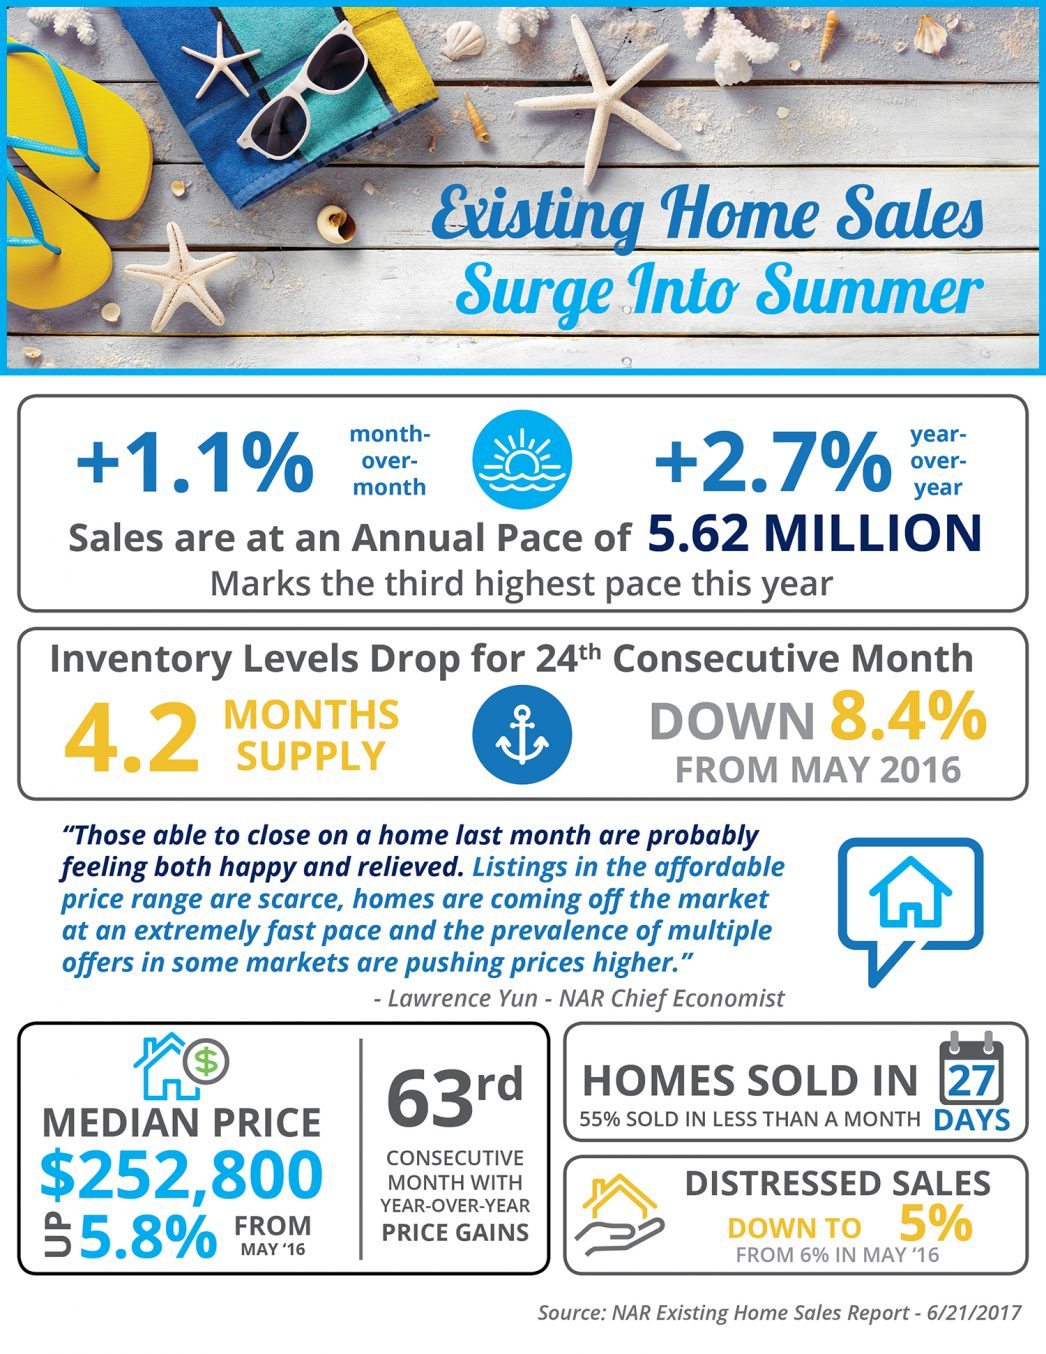 Home Sales in Summer